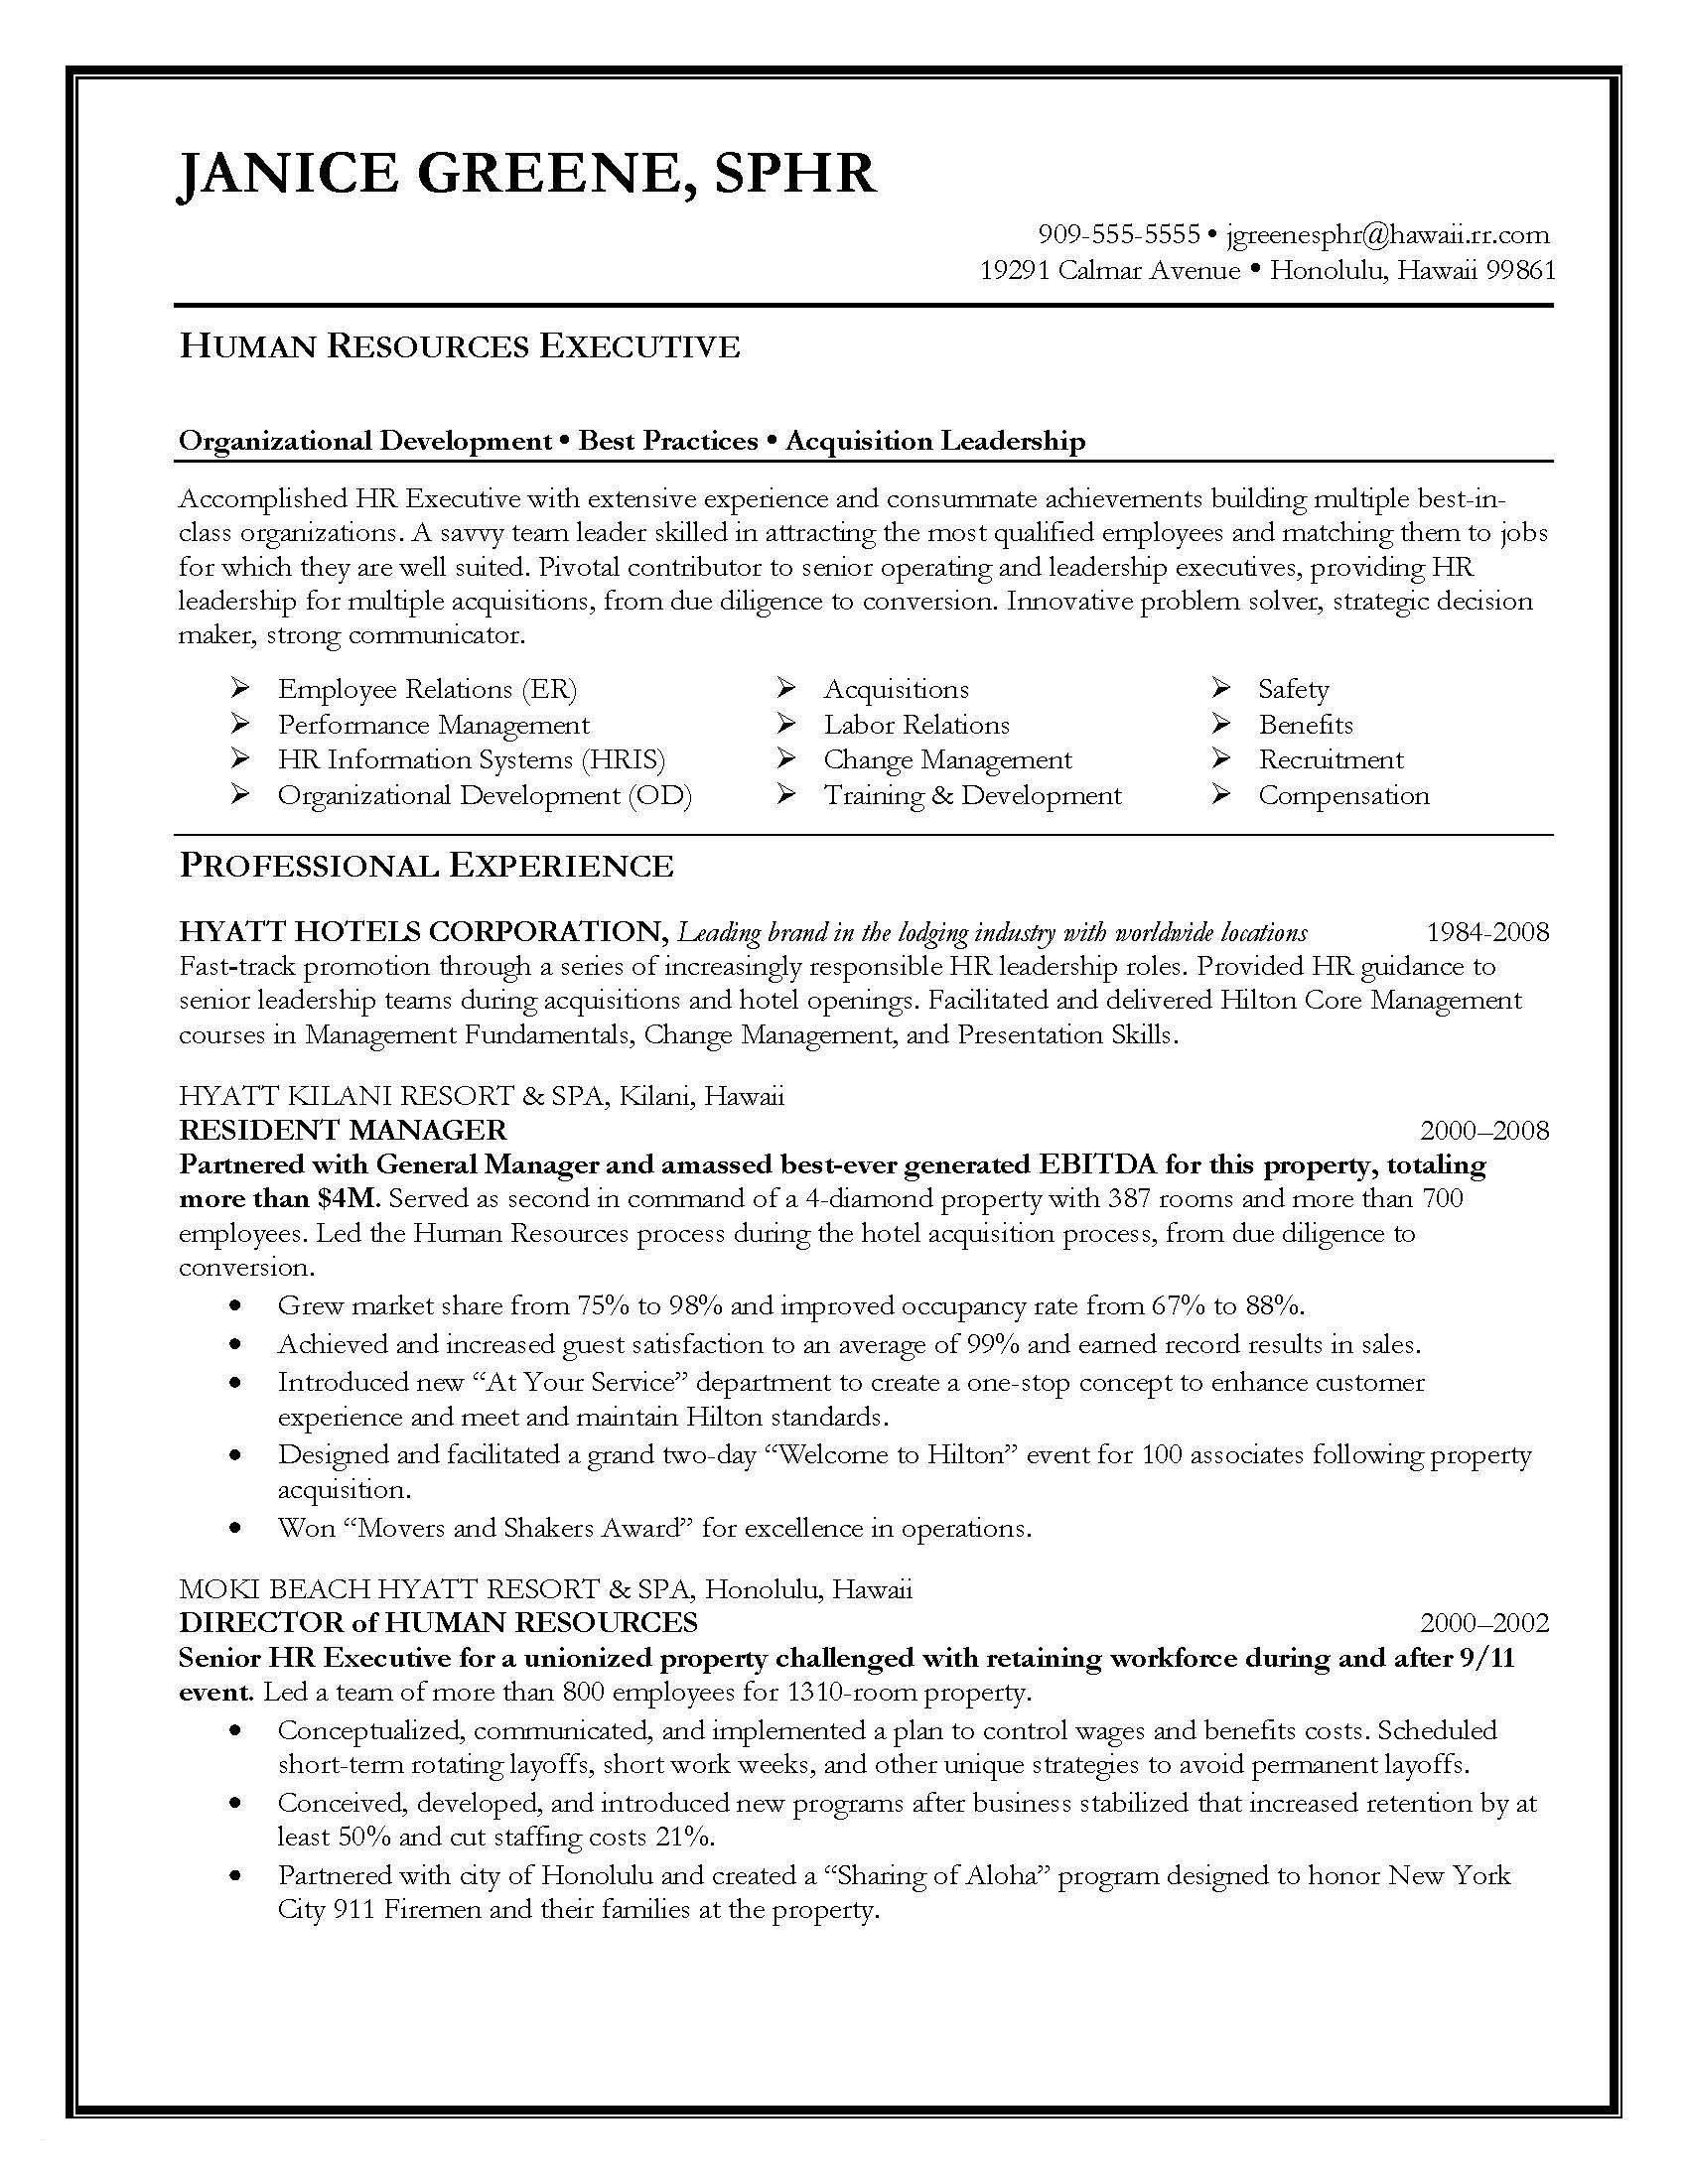 Technical Resume Writer - 25 Technical Resume Writer